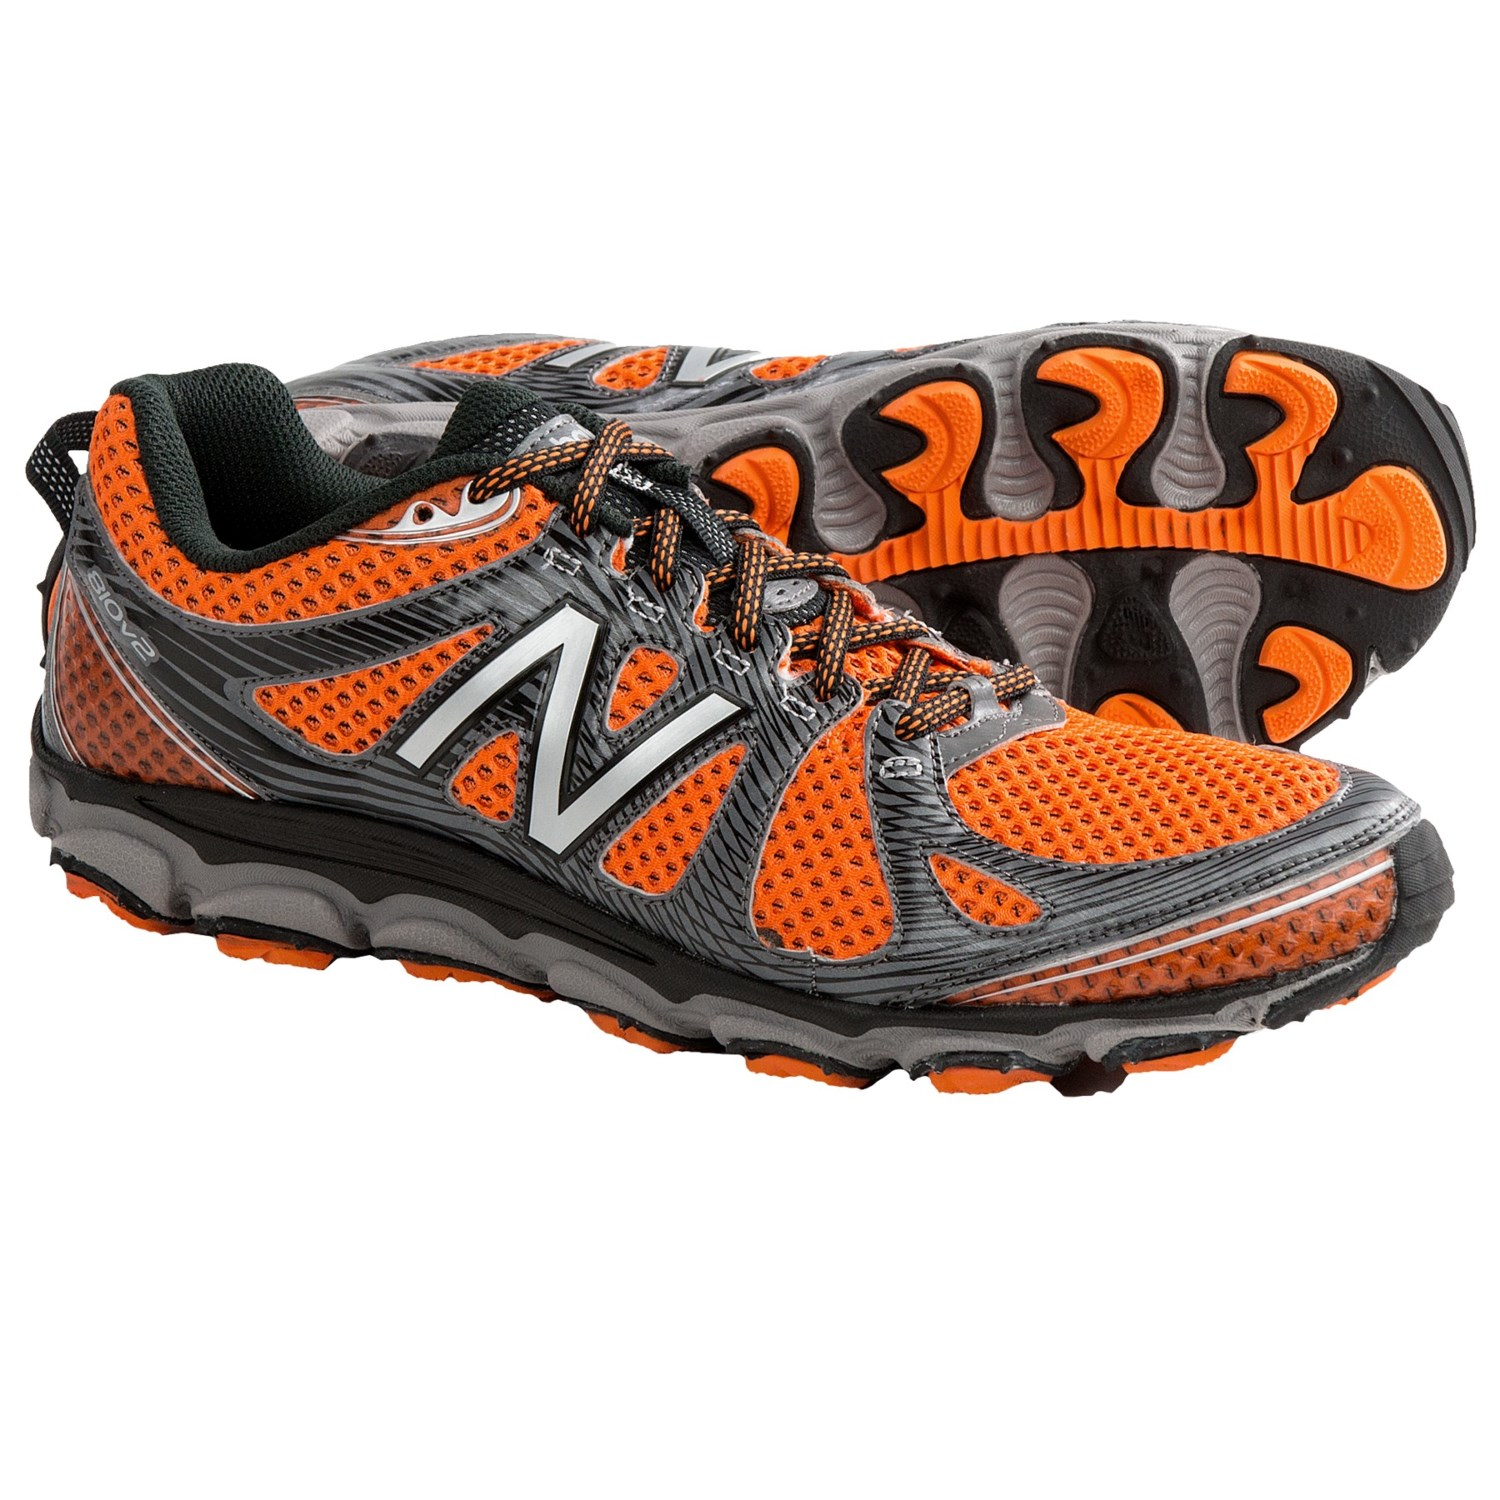 a00828645be0 new balance outdoor trail running